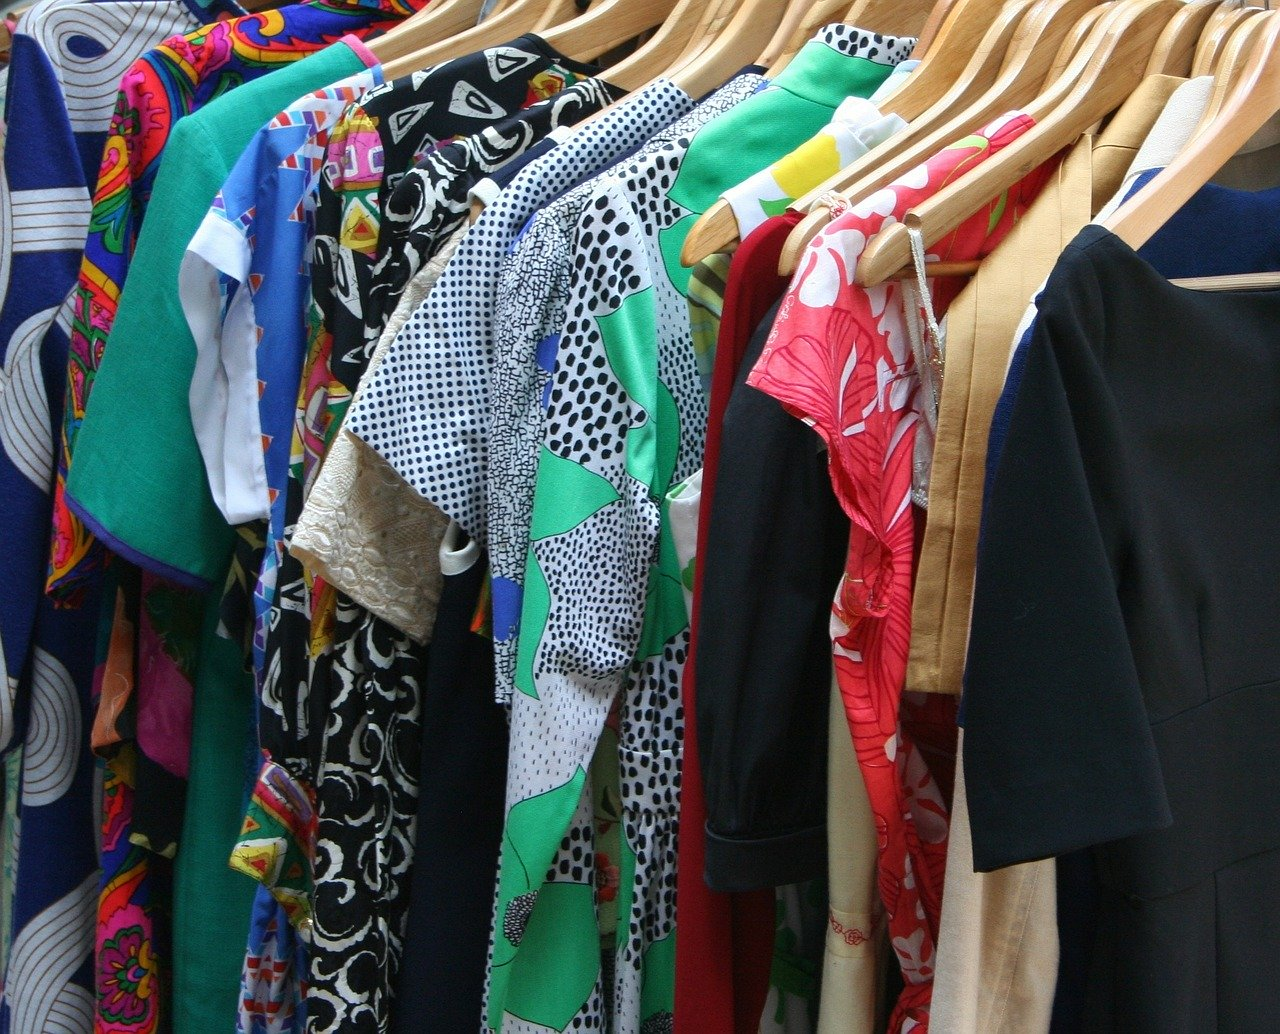 BEST COLLECTION TO HAVE IN YOUR CLOSET